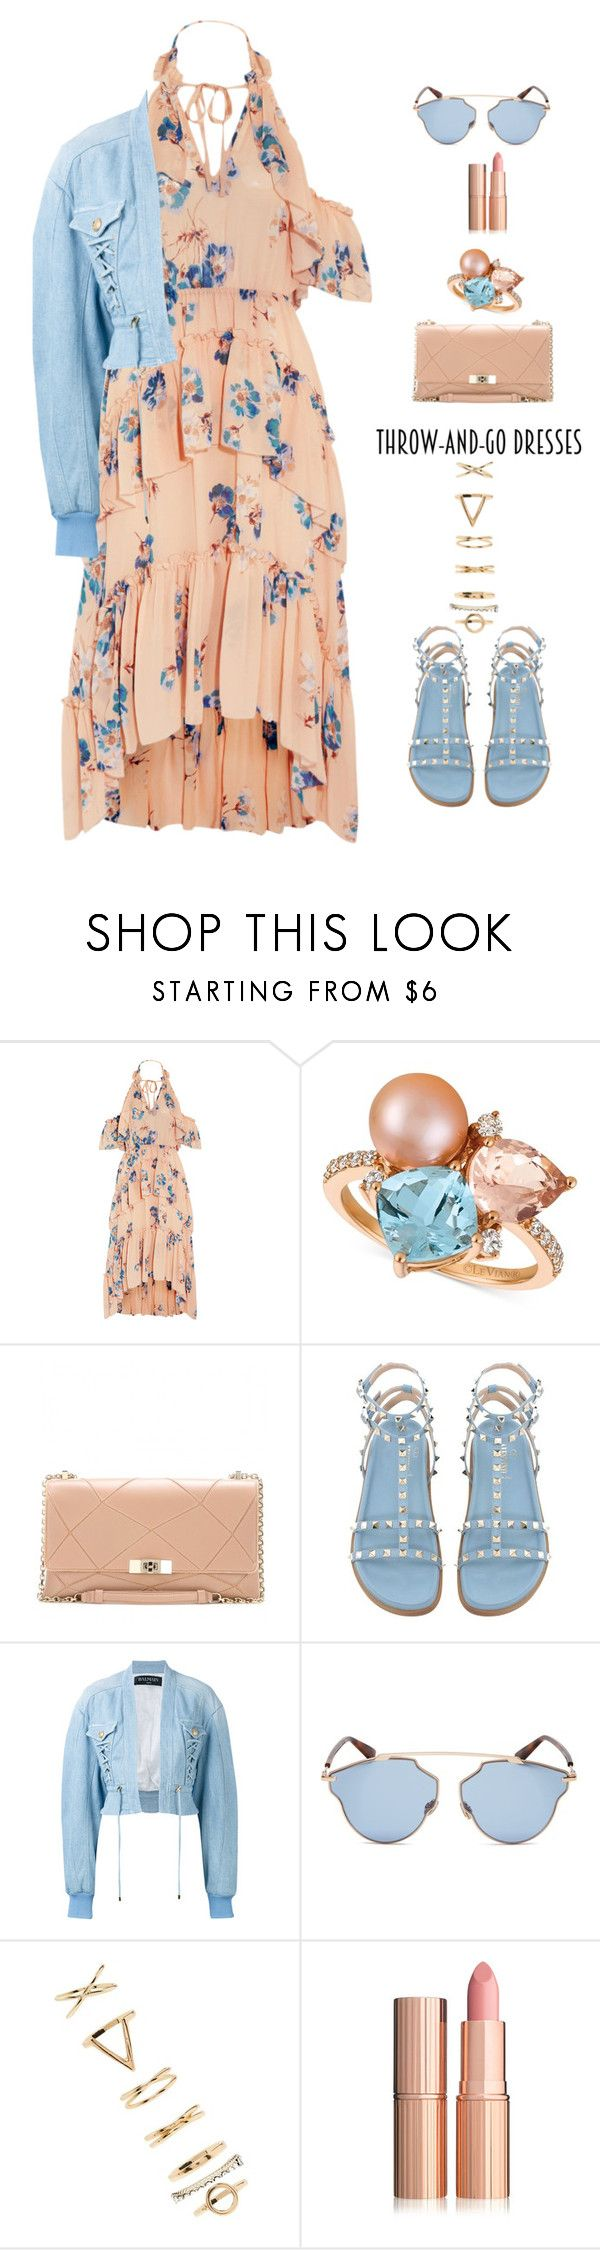 """""""throw and go dress"""" by katymill ❤ liked on Polyvore featuring Ulla Johnson, LE VIAN, Roger Vivier, Balmain, Christian Dior, Forever 21, dress, throwandgo and easydresses"""